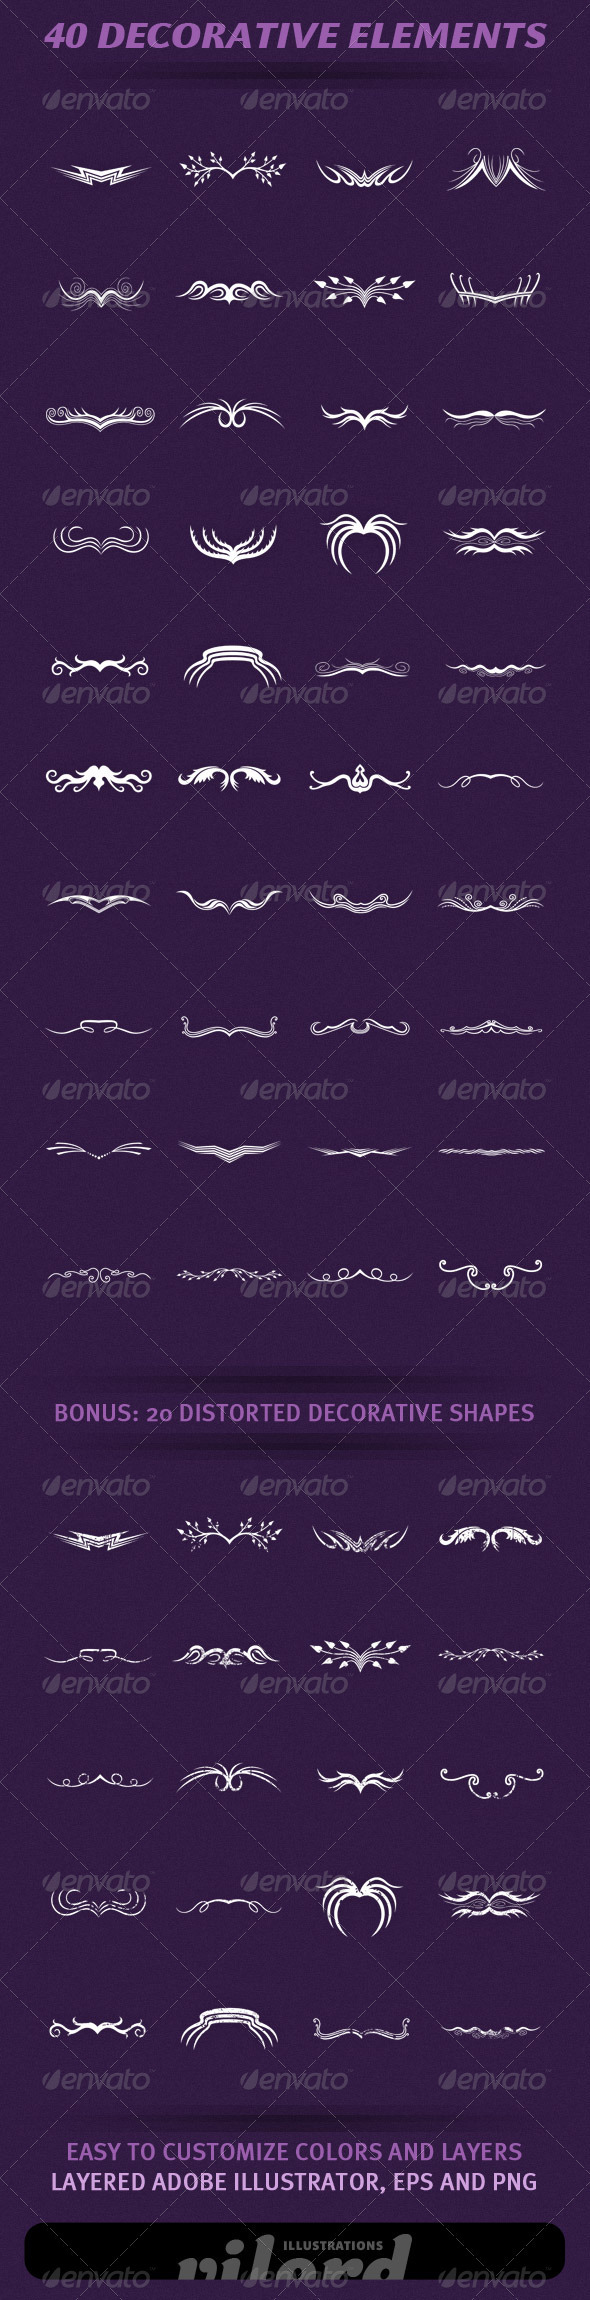 GraphicRiver 40 Decorative Elements 1627581